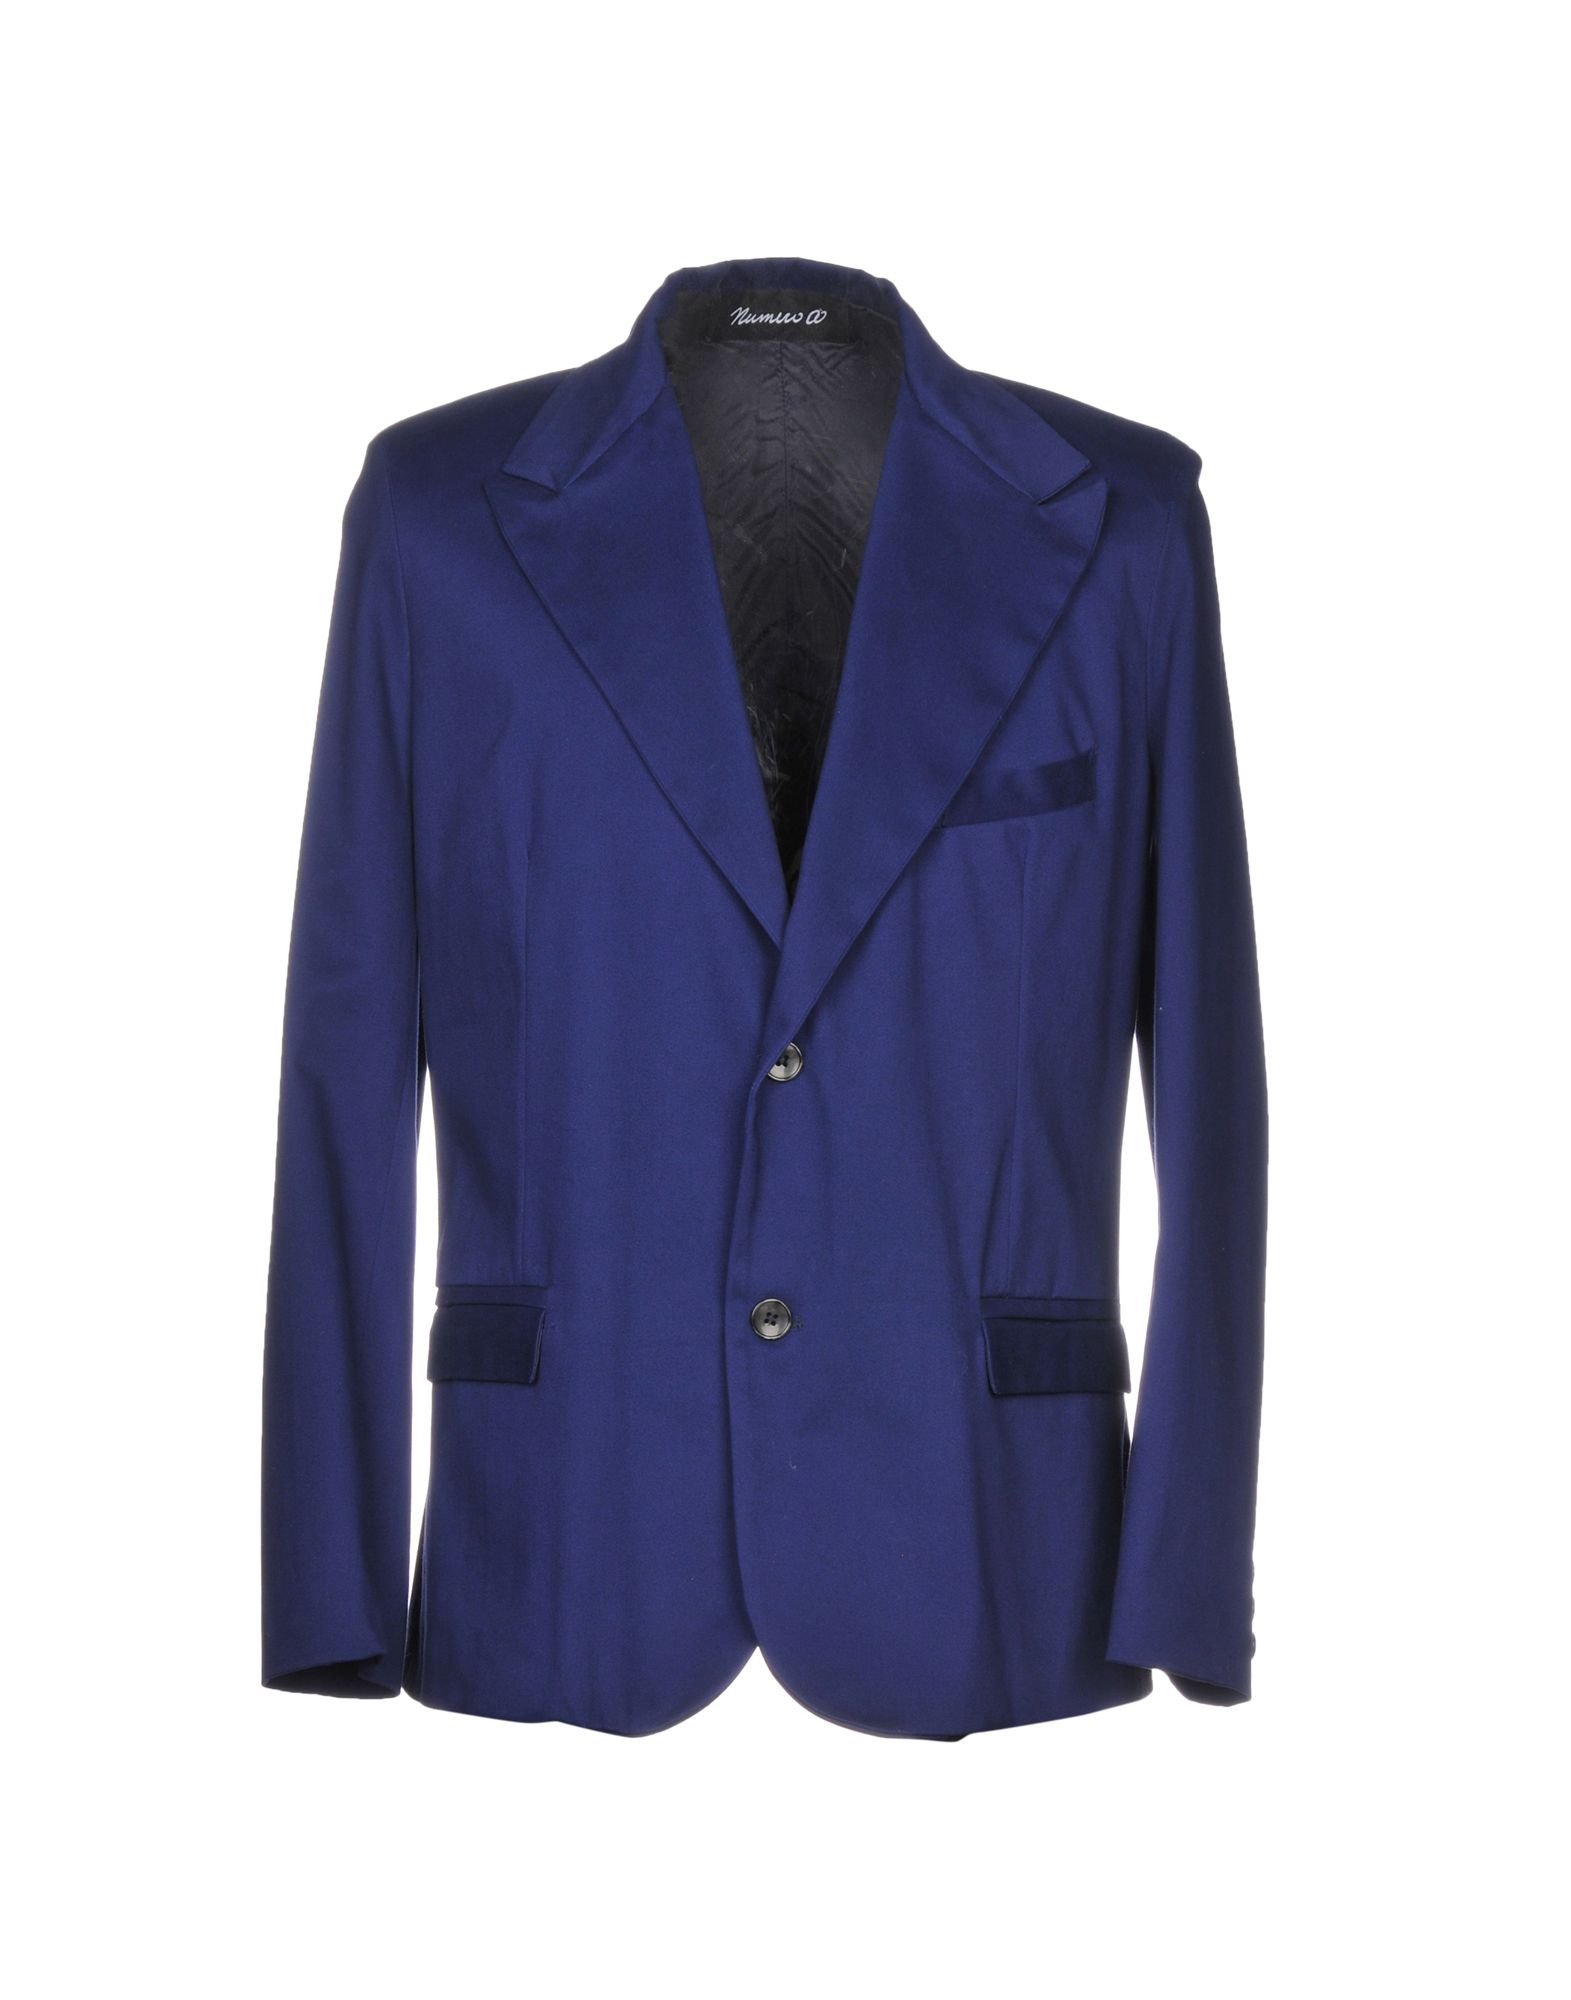 NUMERO00 Blazer in Blue